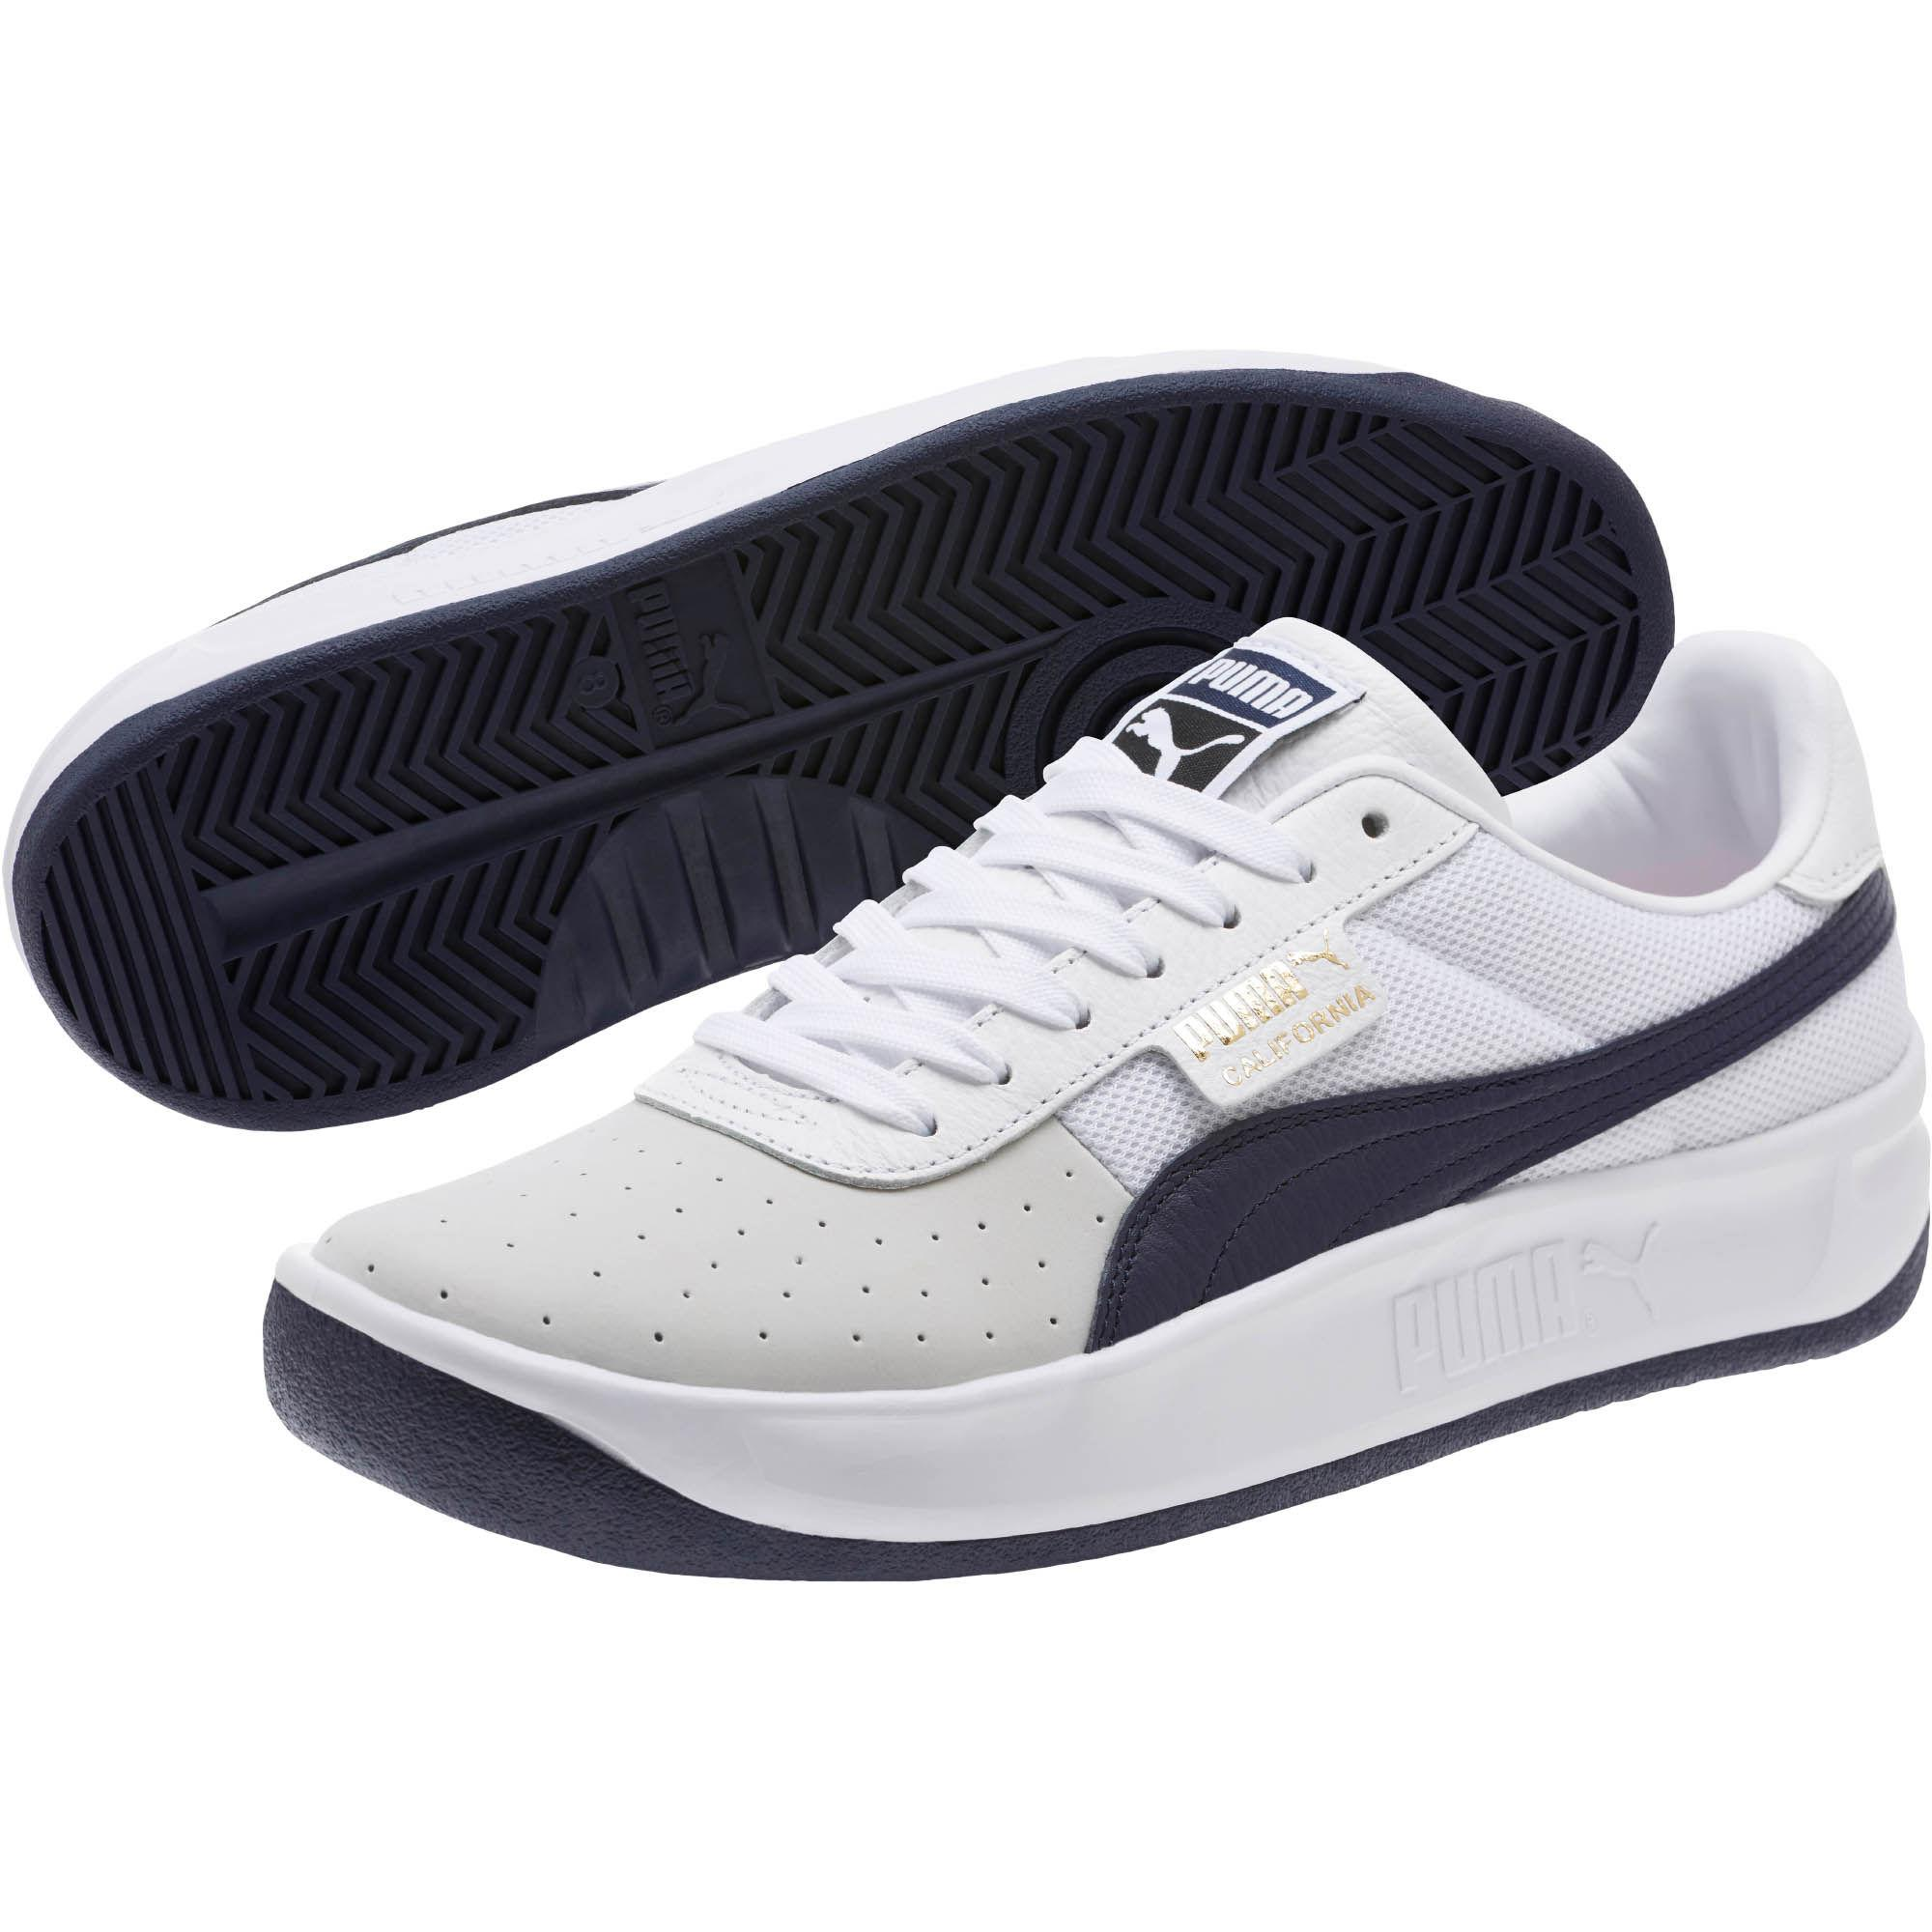 8450c678882b Lyst - PUMA California Casual Sneakers in White for Men